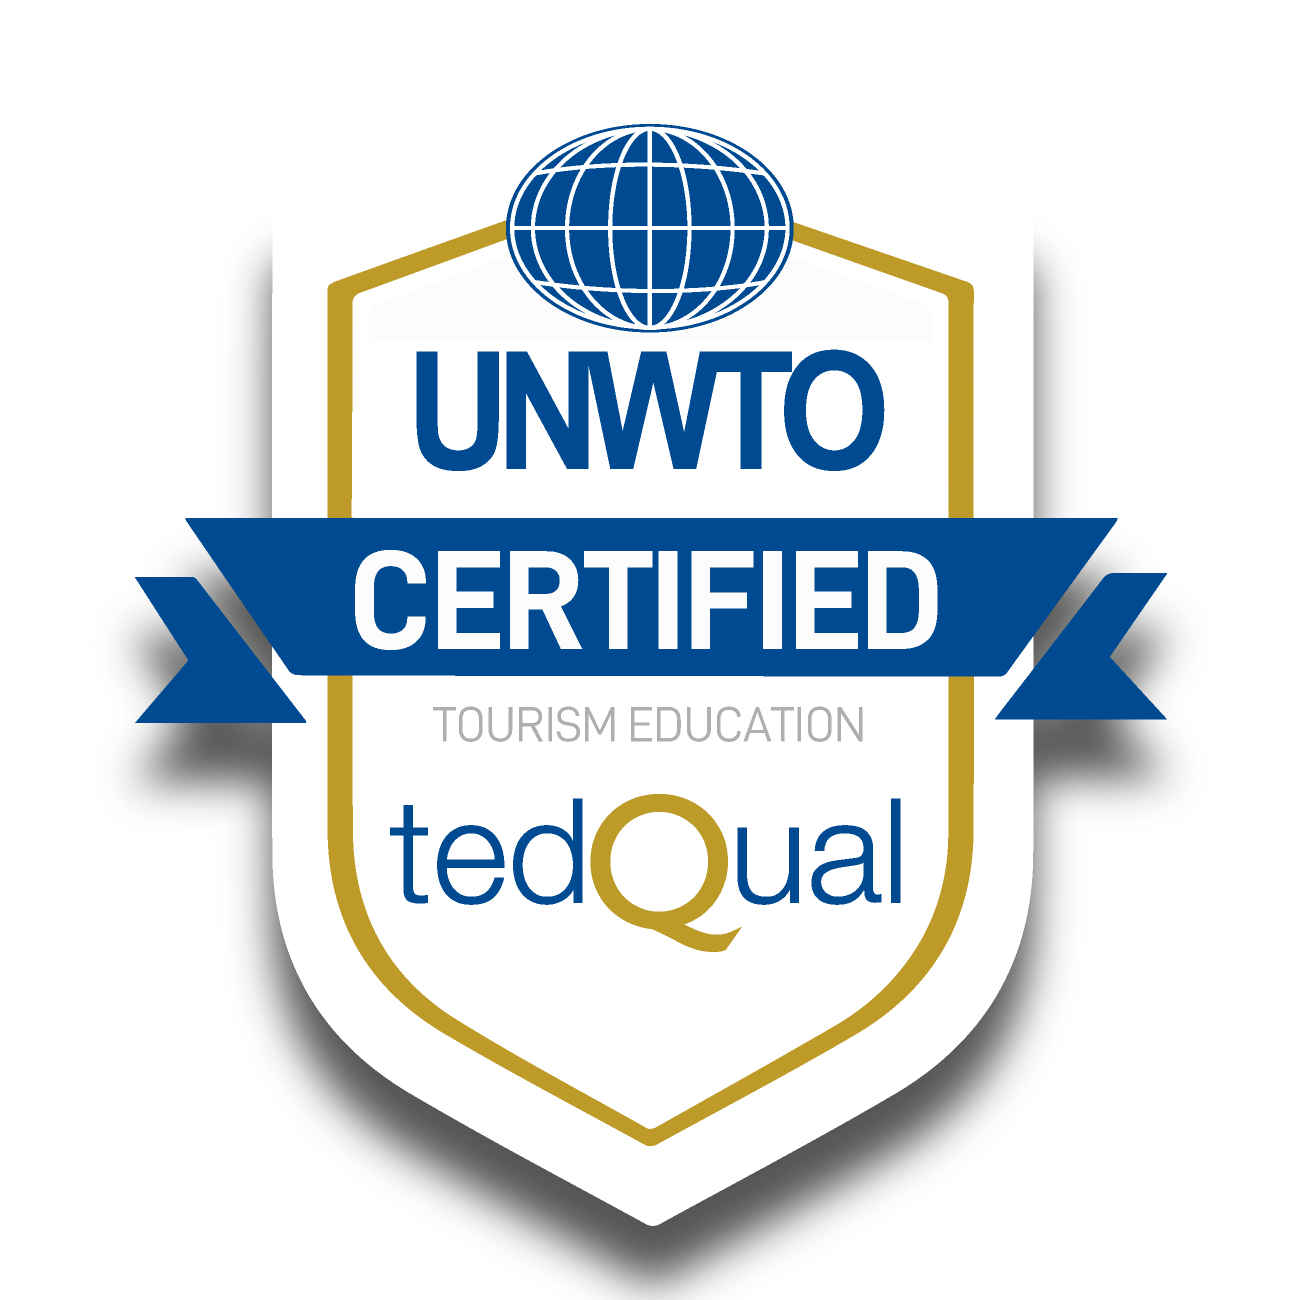 UNTWO certified